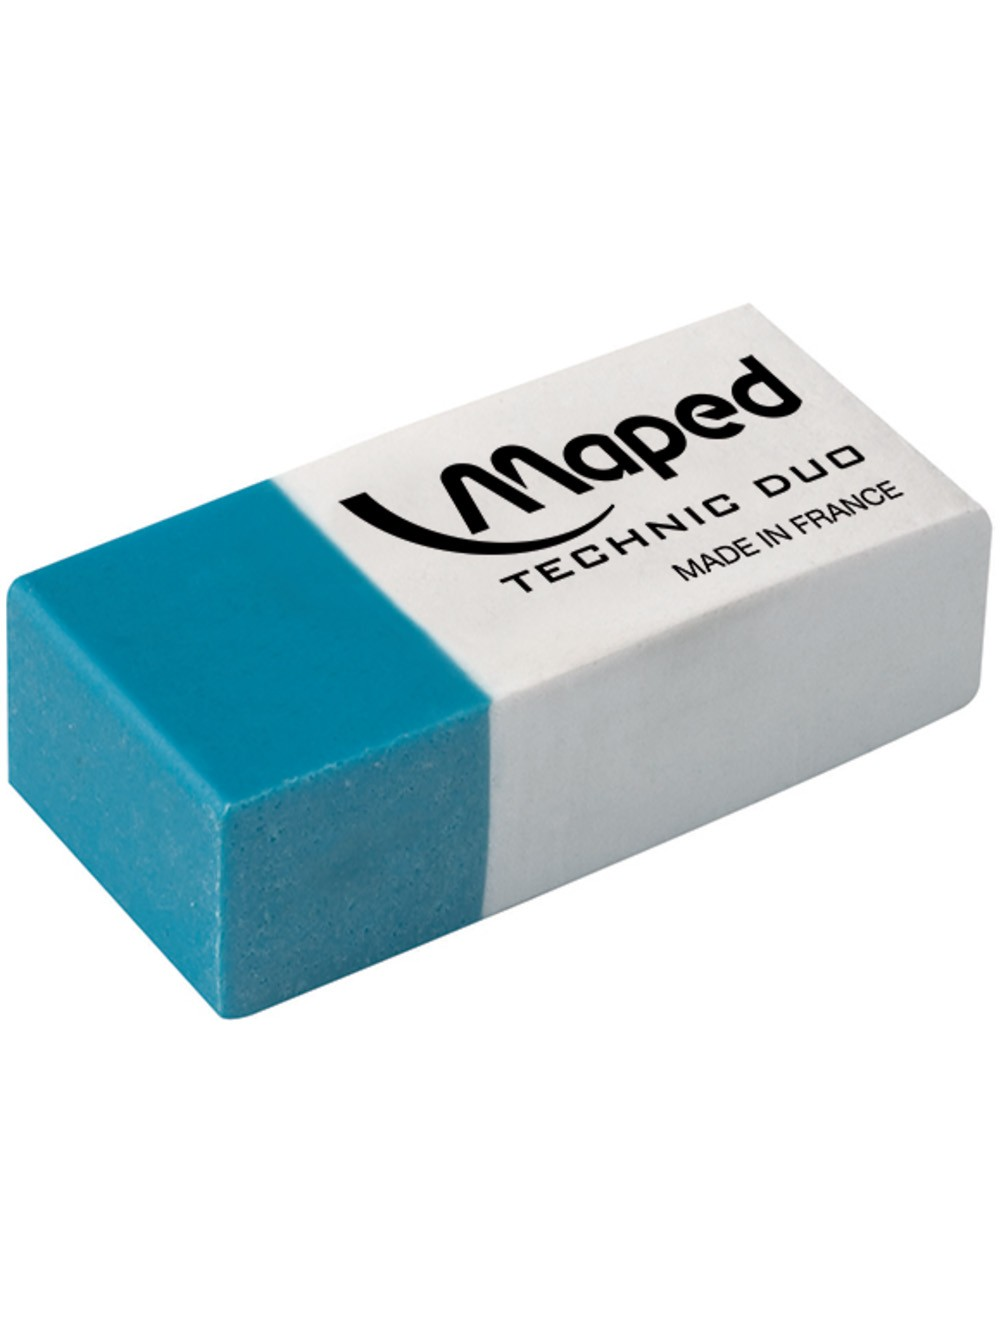 MAPED TECHNIC DUO ERASERS X2